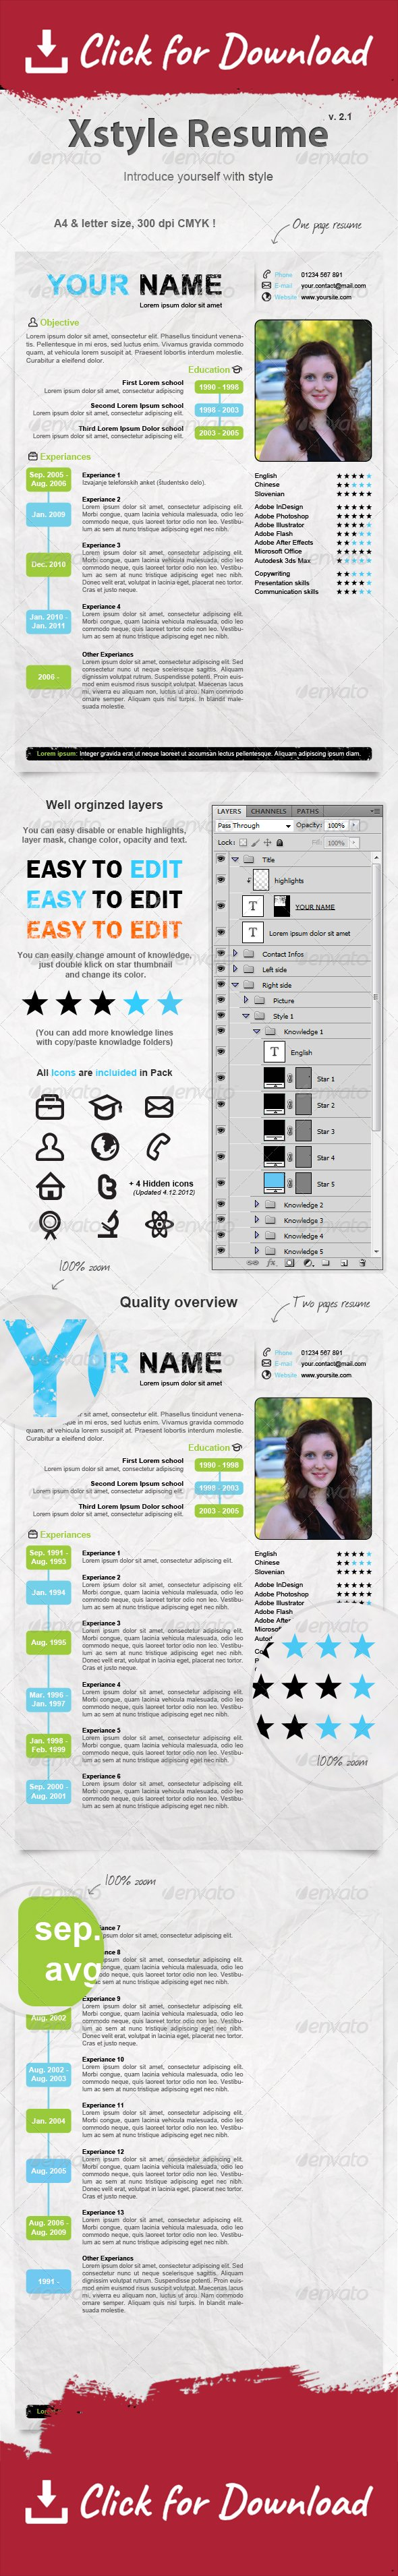 Xstyle Resume | Resume styles, Professional resume and Personal ...